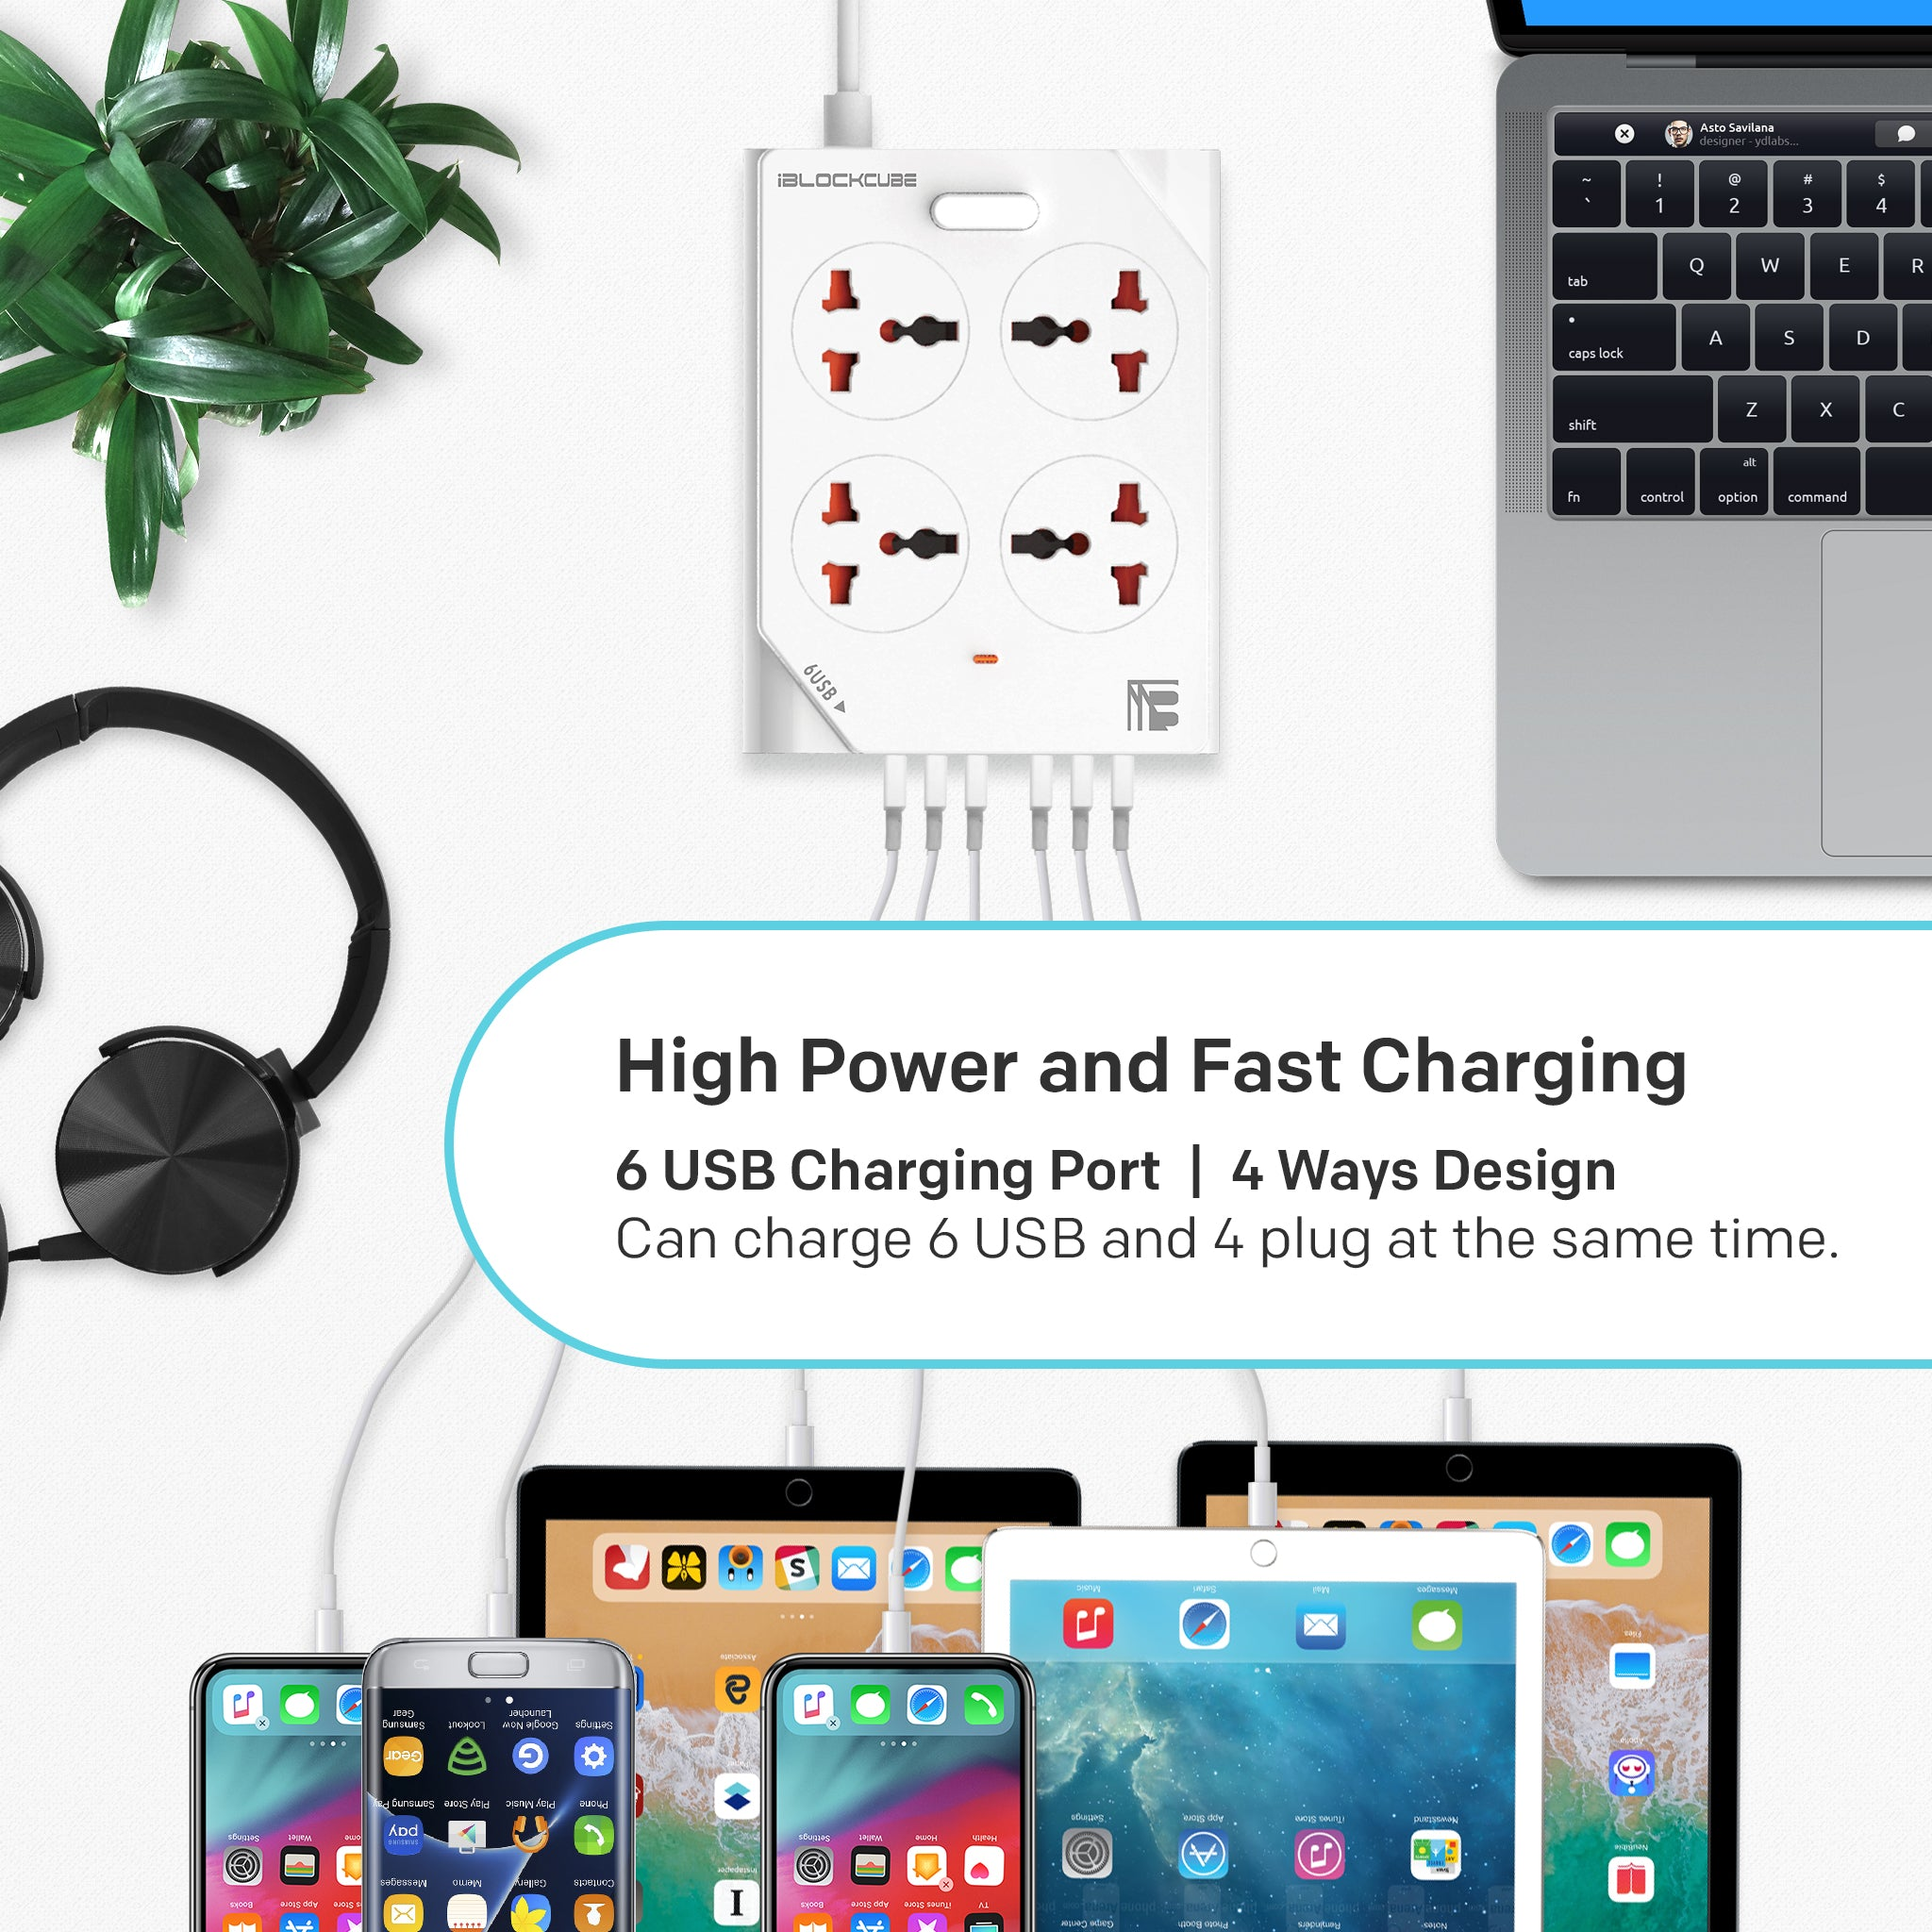 Extension Lead with USB 6 Ports 4 Way Outlets Universal Power Strip